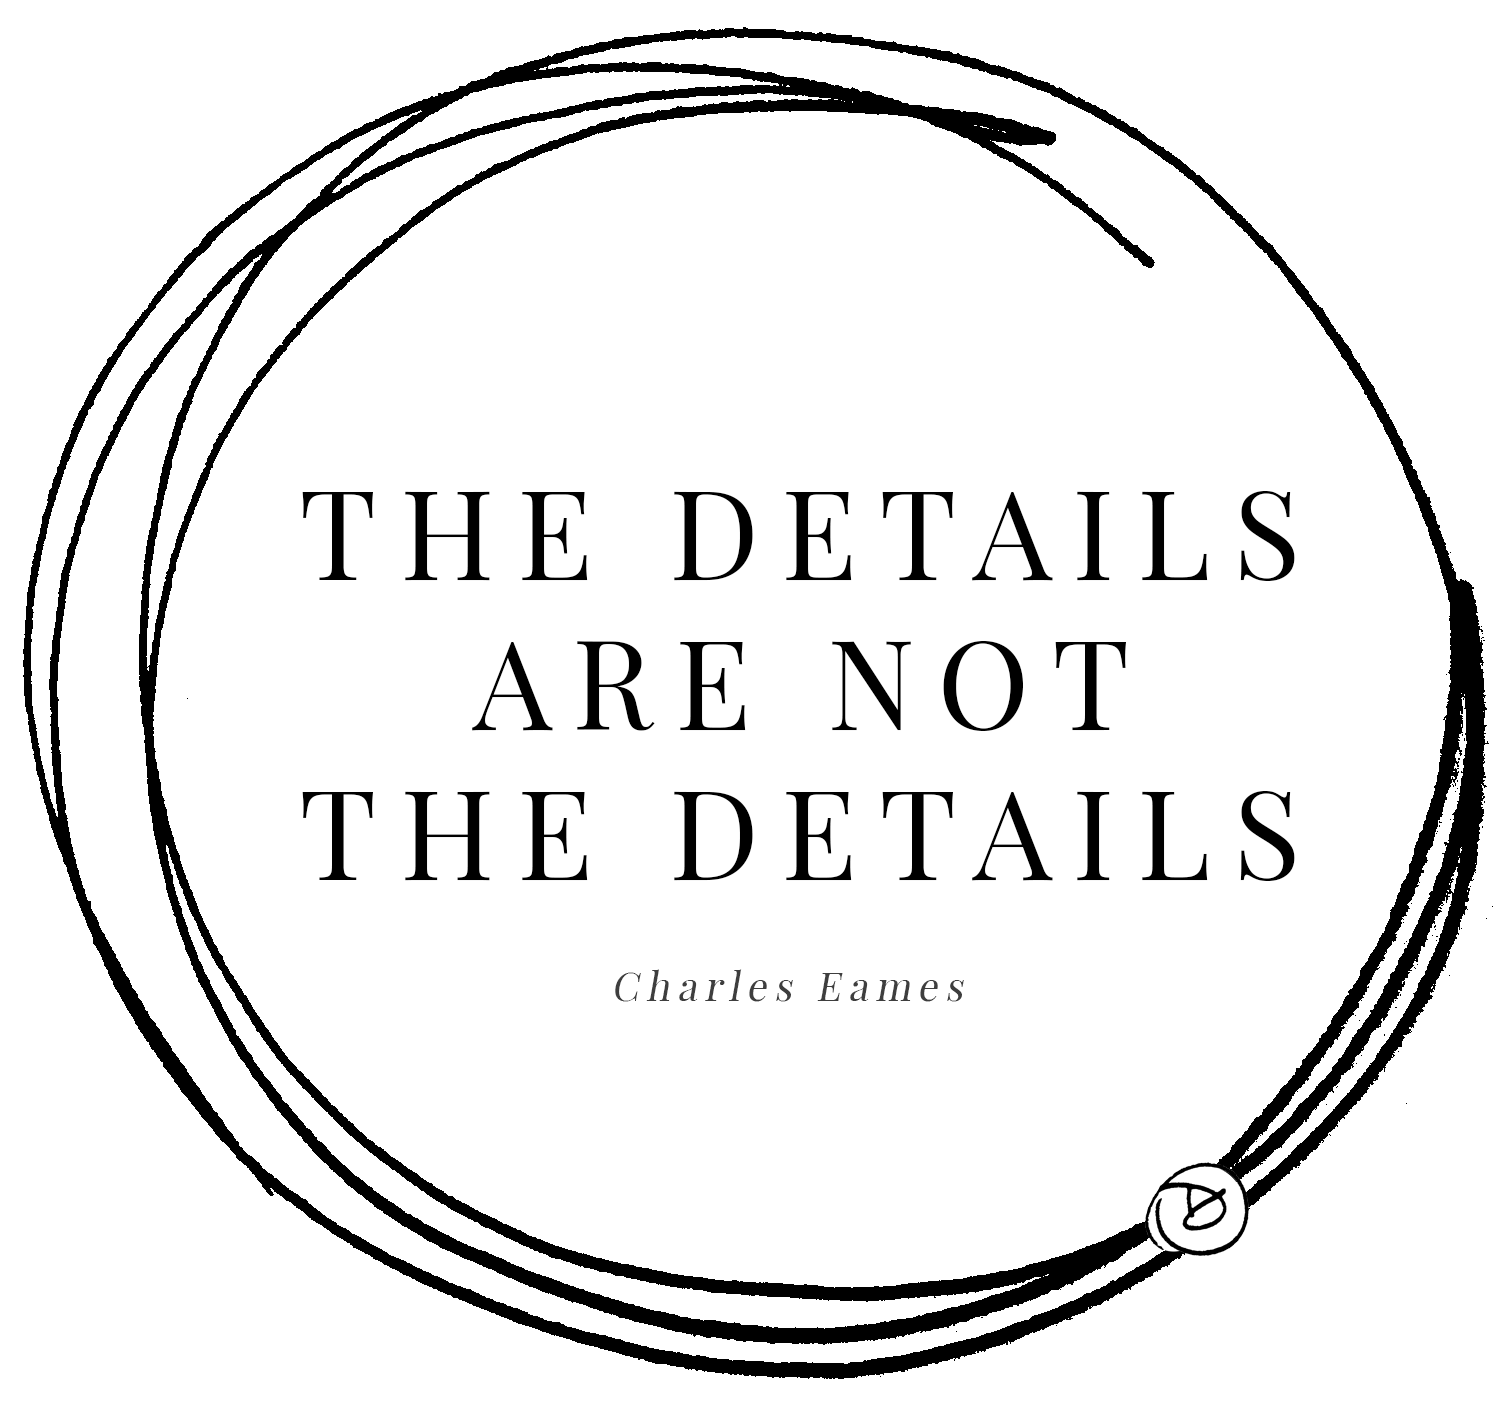 details-are-not-details